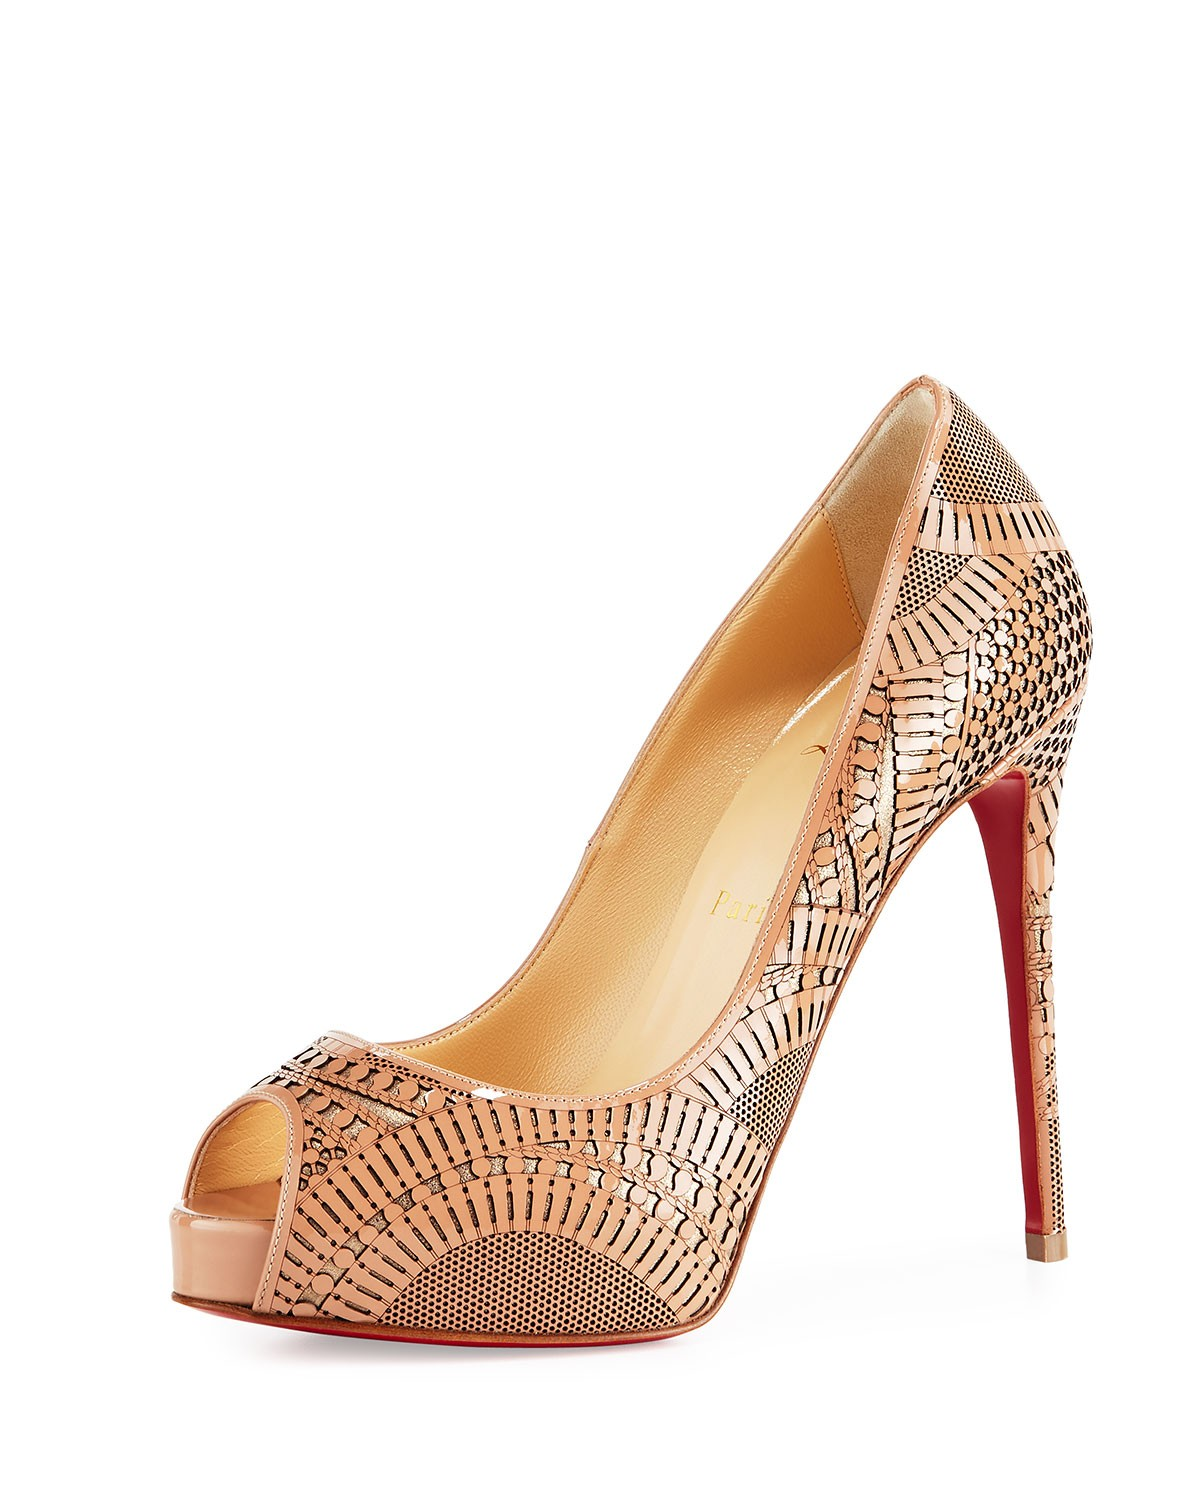 Suellena Laser-Cut Peep-Toe Red Sole Pump, Nude, Women's, Size: 10 1/2B - Christian Louboutin